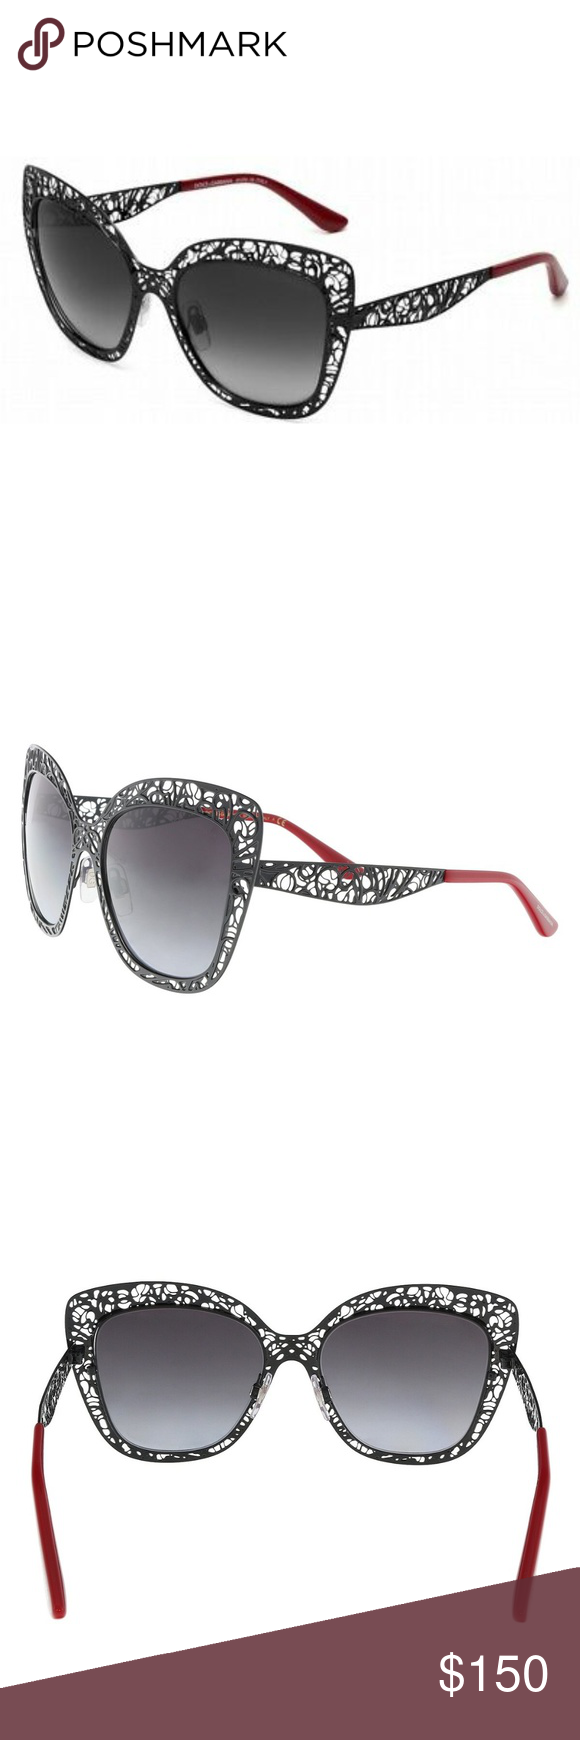 a7b04866b401 Dolce & Gabbana 2164 Sunglasses Cat-eye red cutout New Dolce & Gabbana  Sunglasses DG